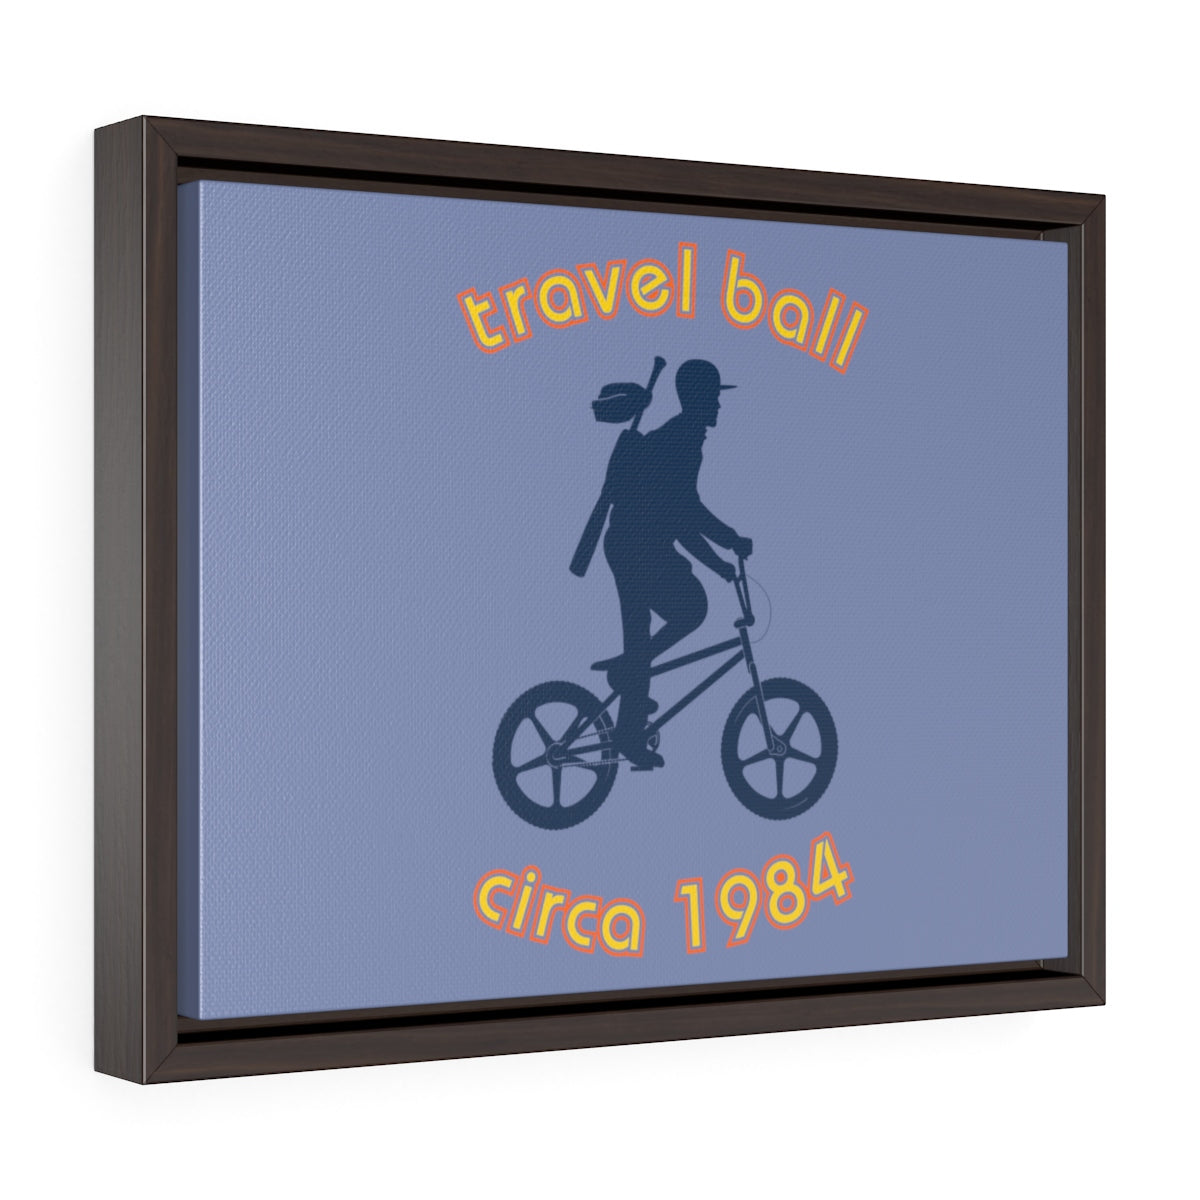 Framed Canvas Travel Ball 1984